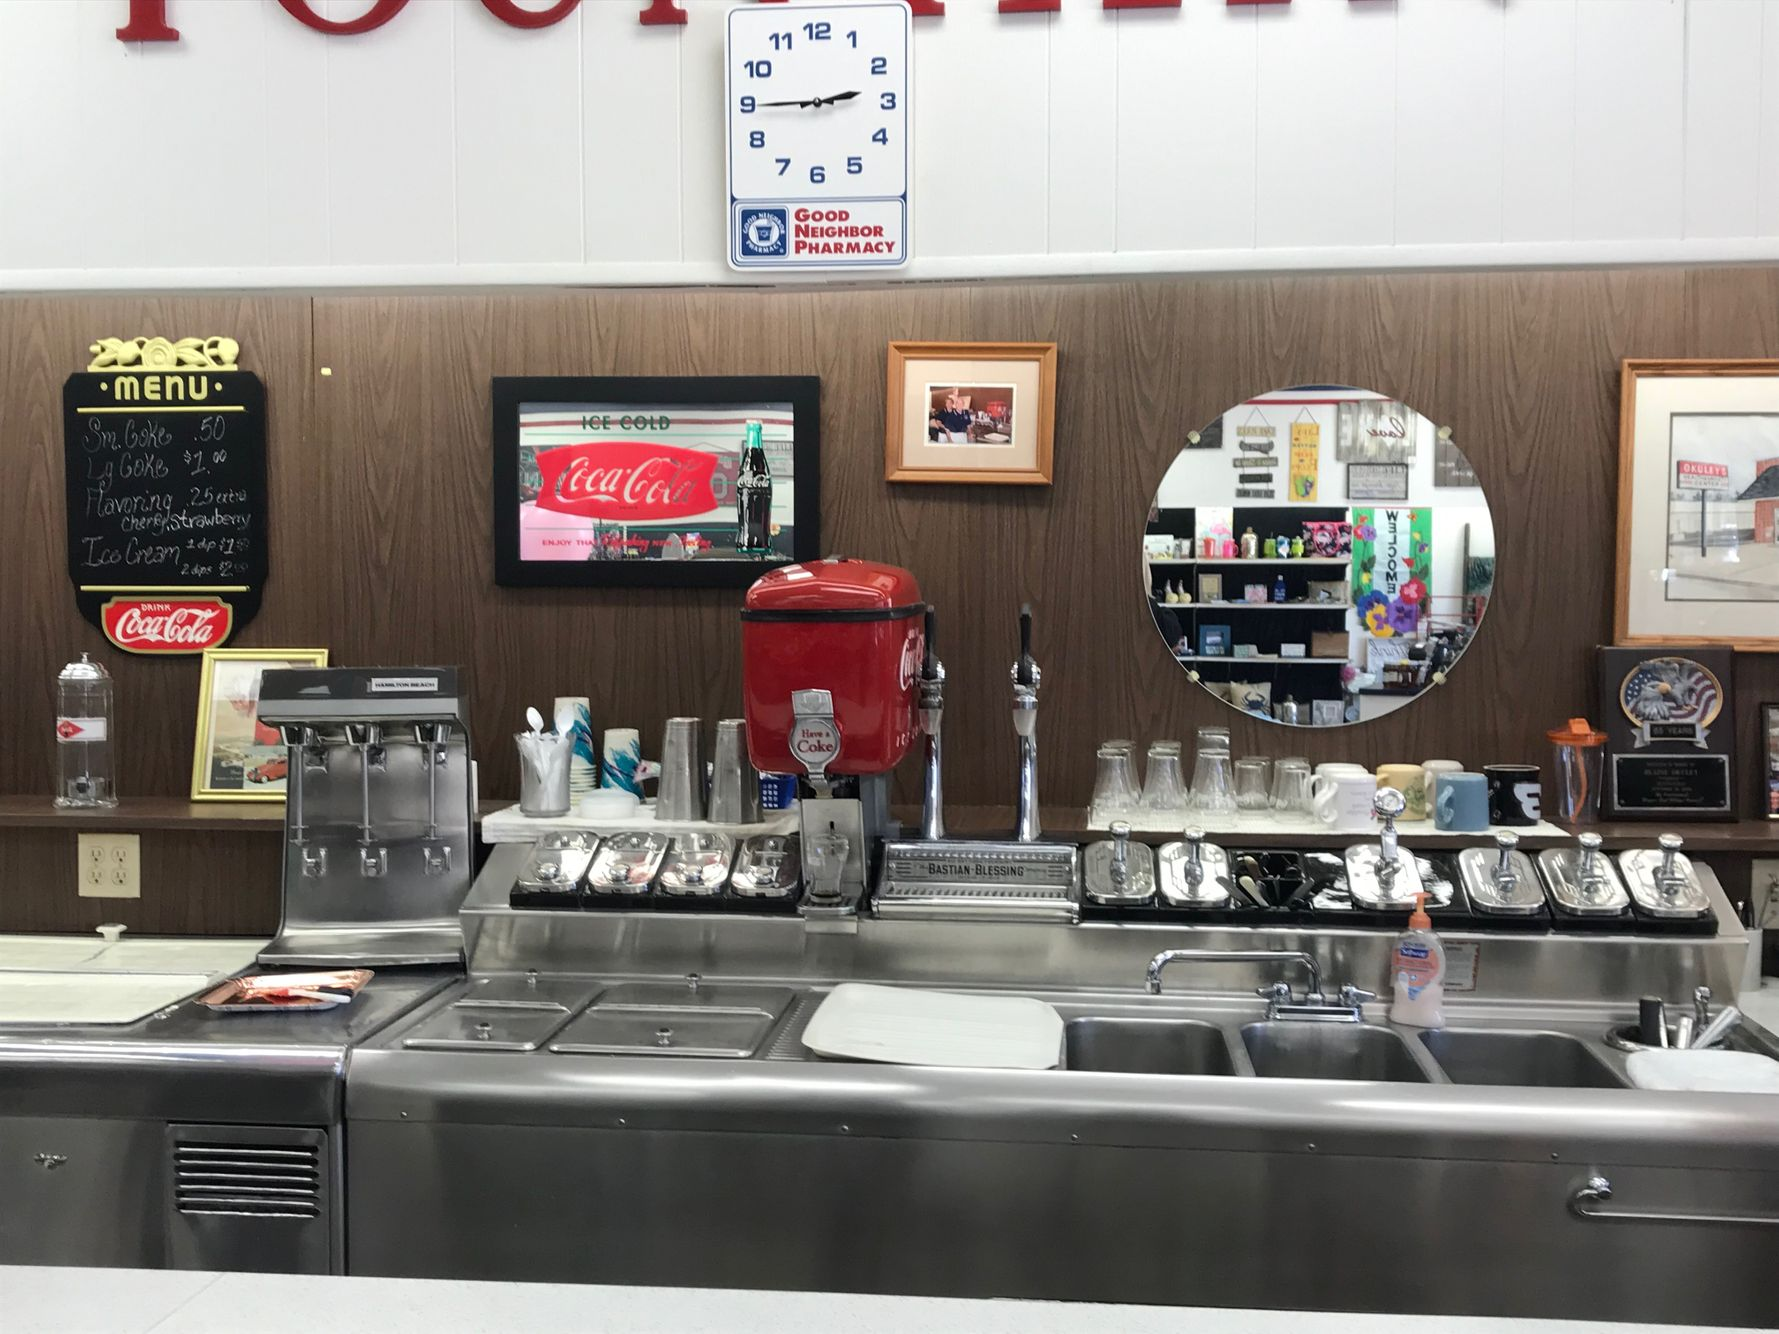 Continental PIC7-SODA FOUNTAIN.jpeg